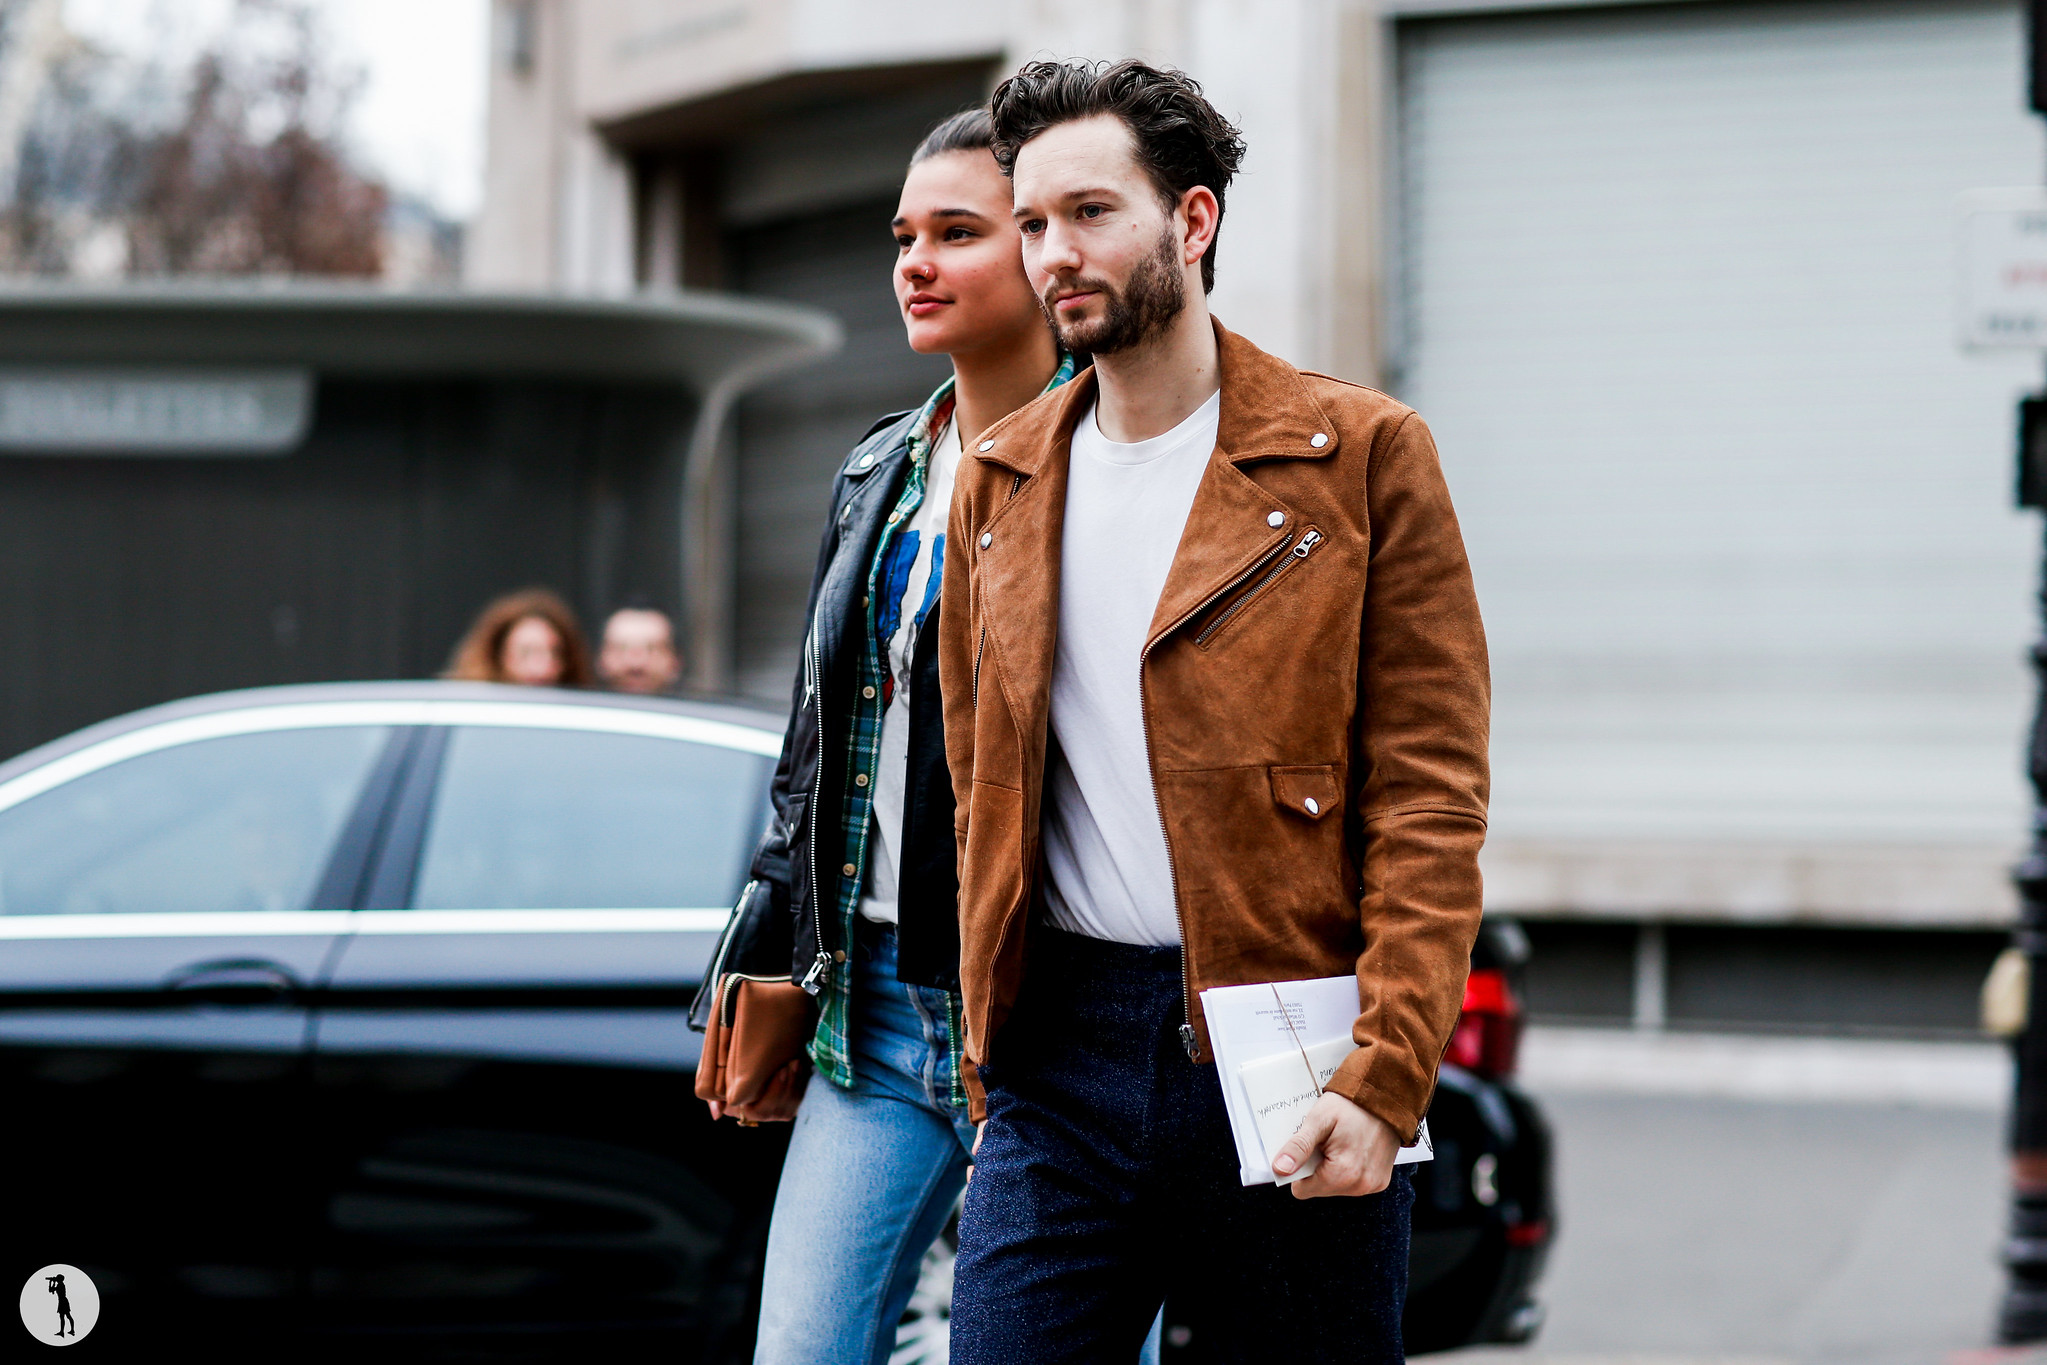 Jenny Albright and Isaac Hindin-Miller at Paris Fashion Week Menswear 2